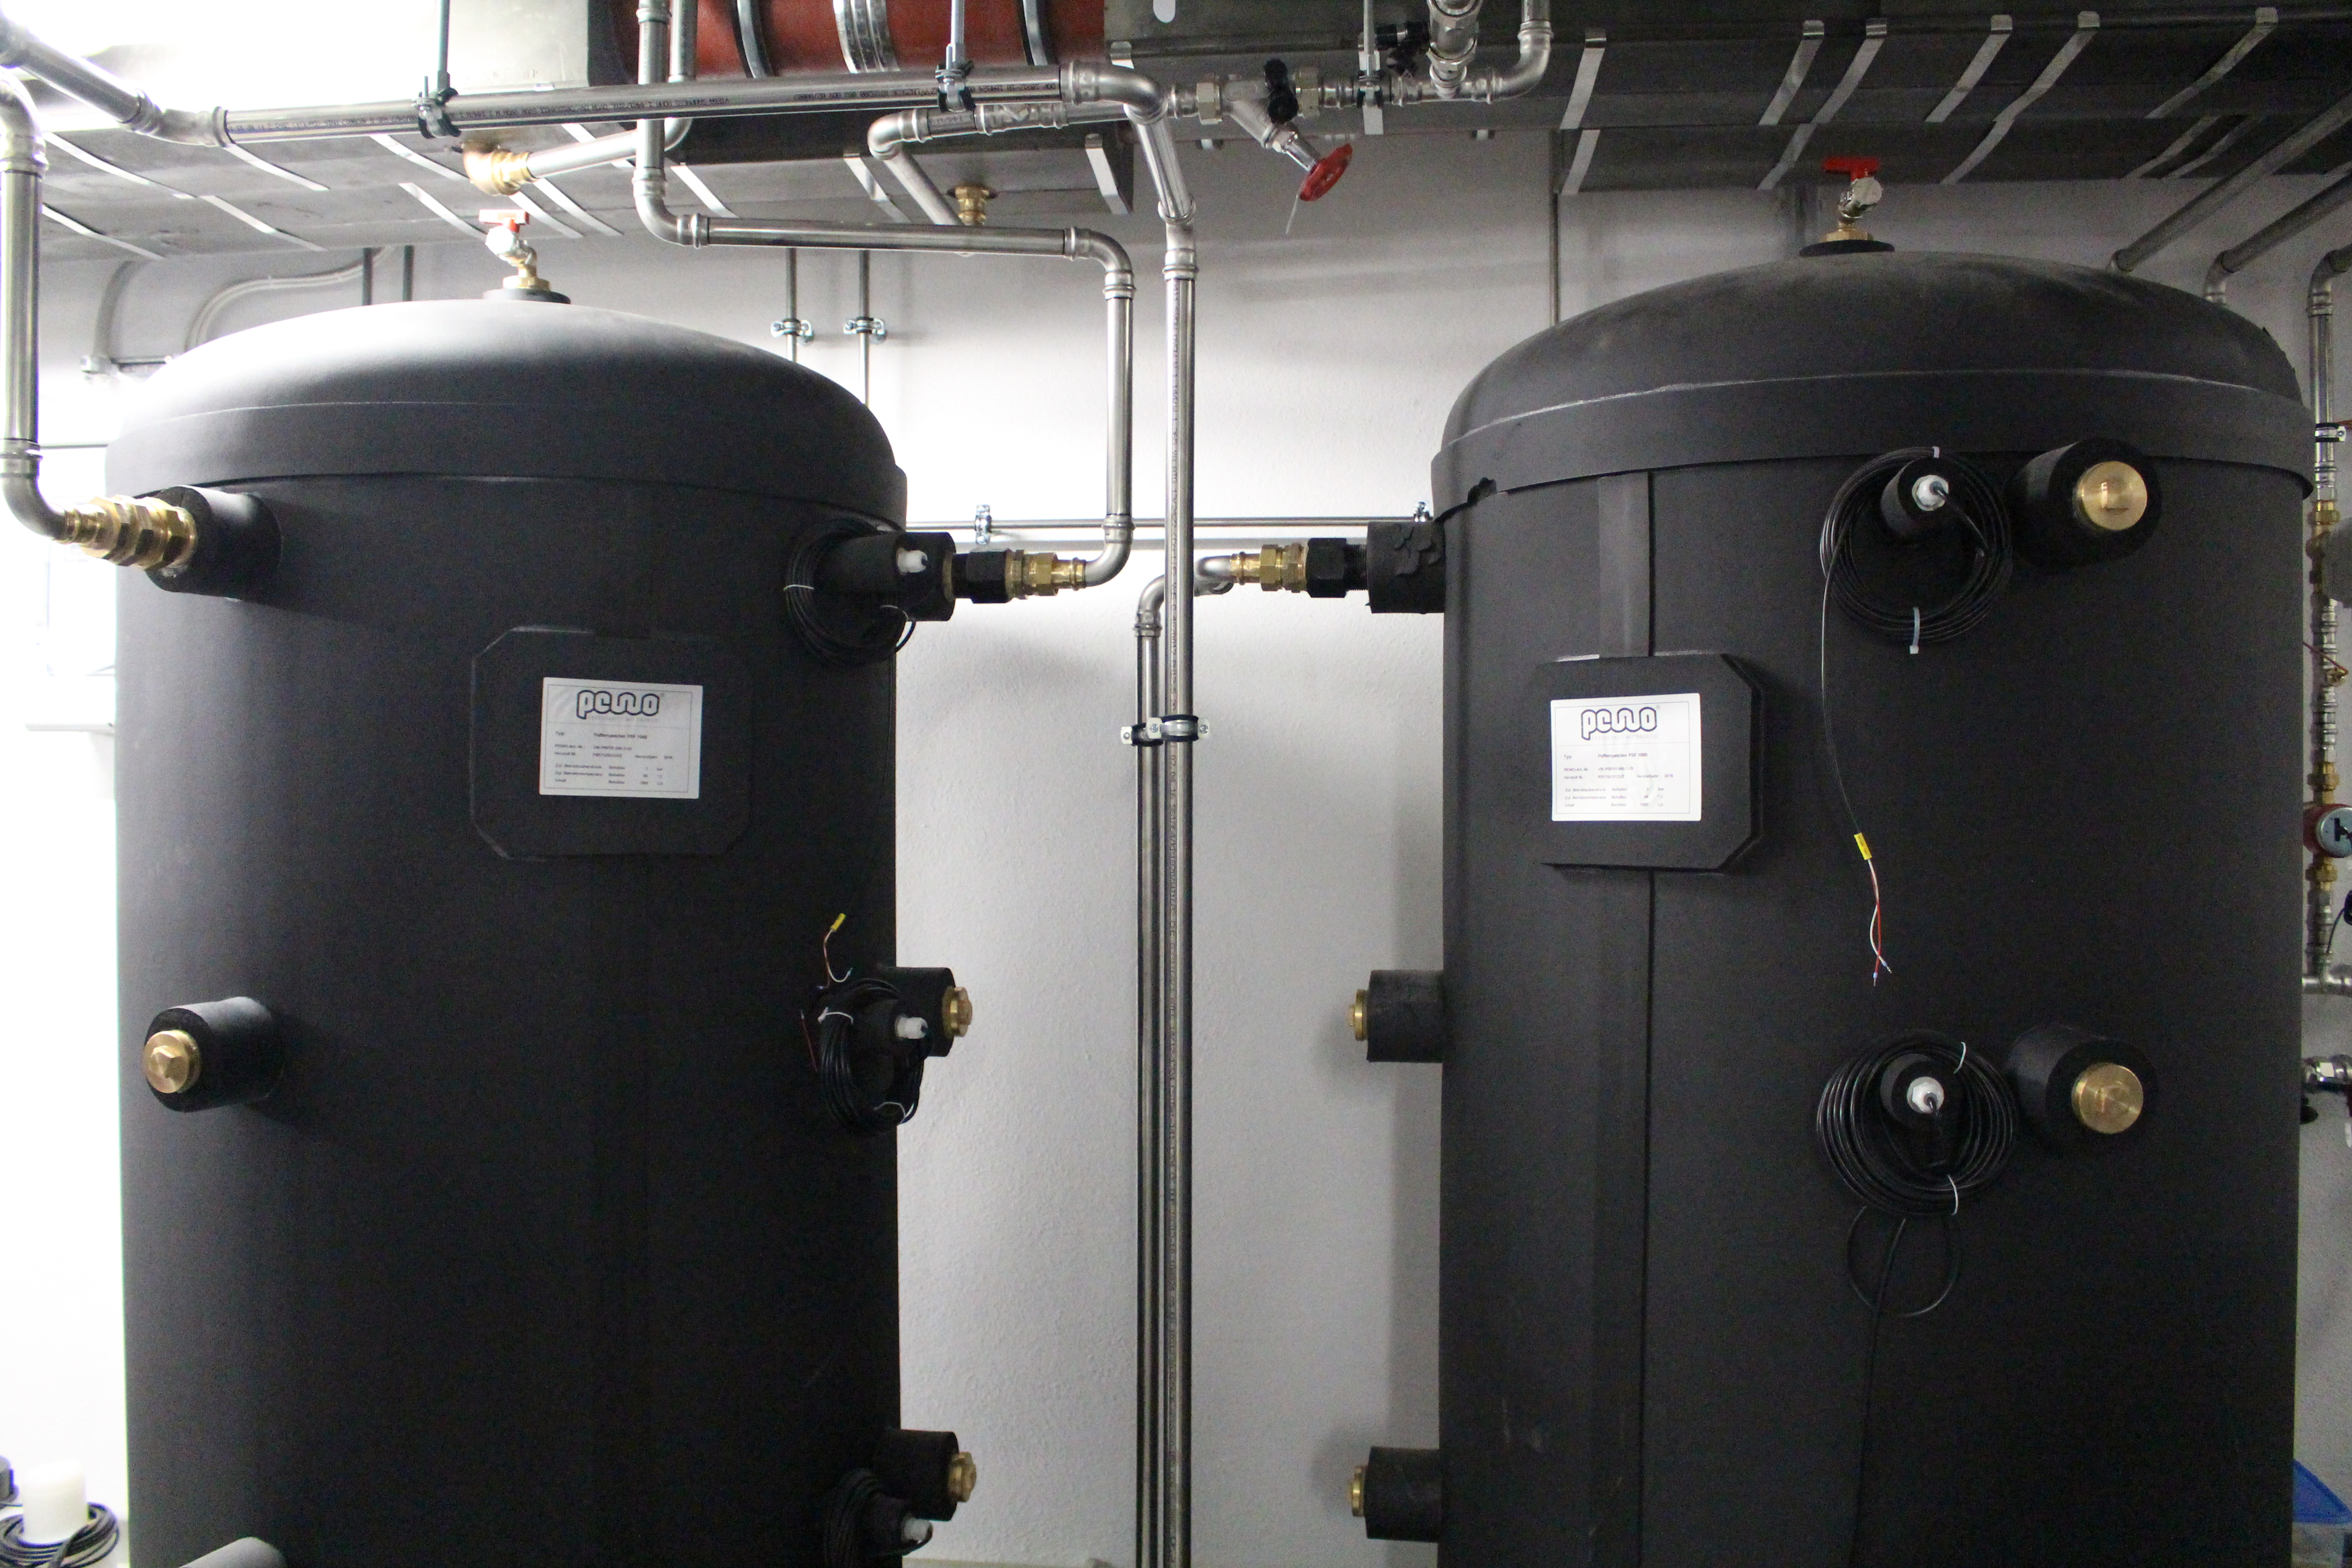 File NetWORKS 3 technology of heat recovery and greywater reuse